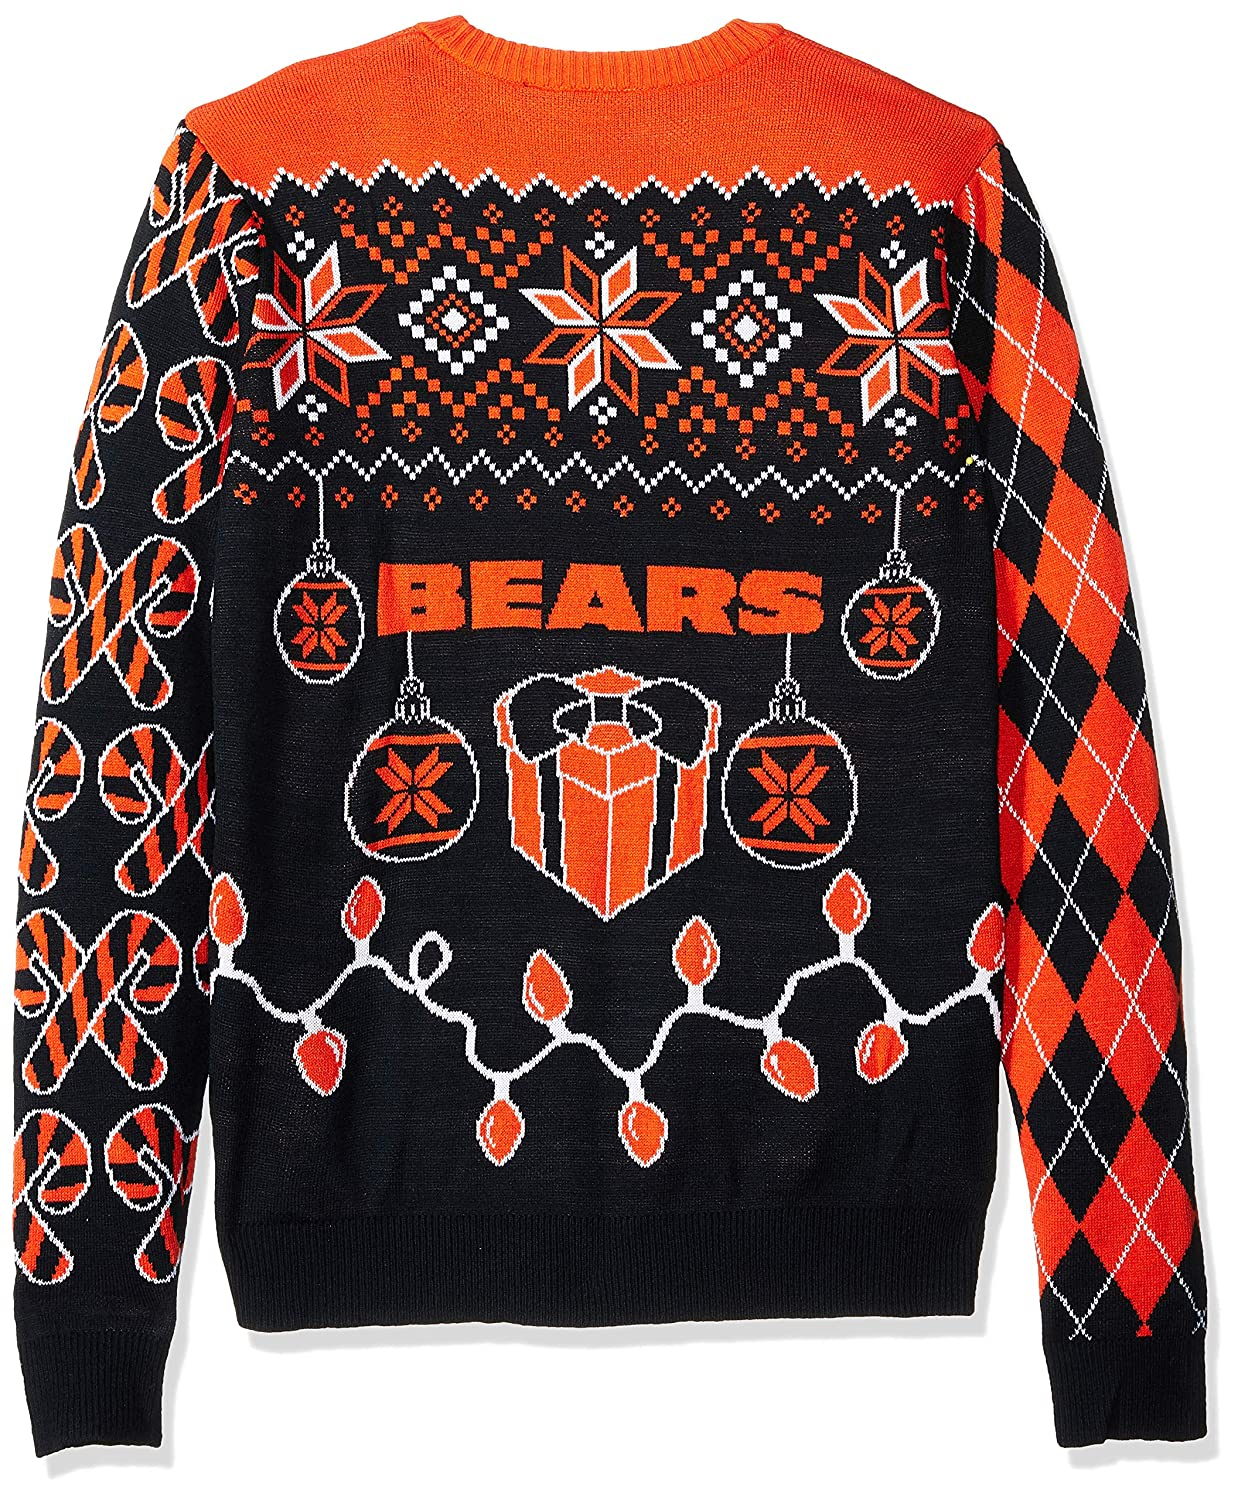 4fc83126 FOCO NFL Mens Holiday Ugly Christmas Tree & Ornament Sweater